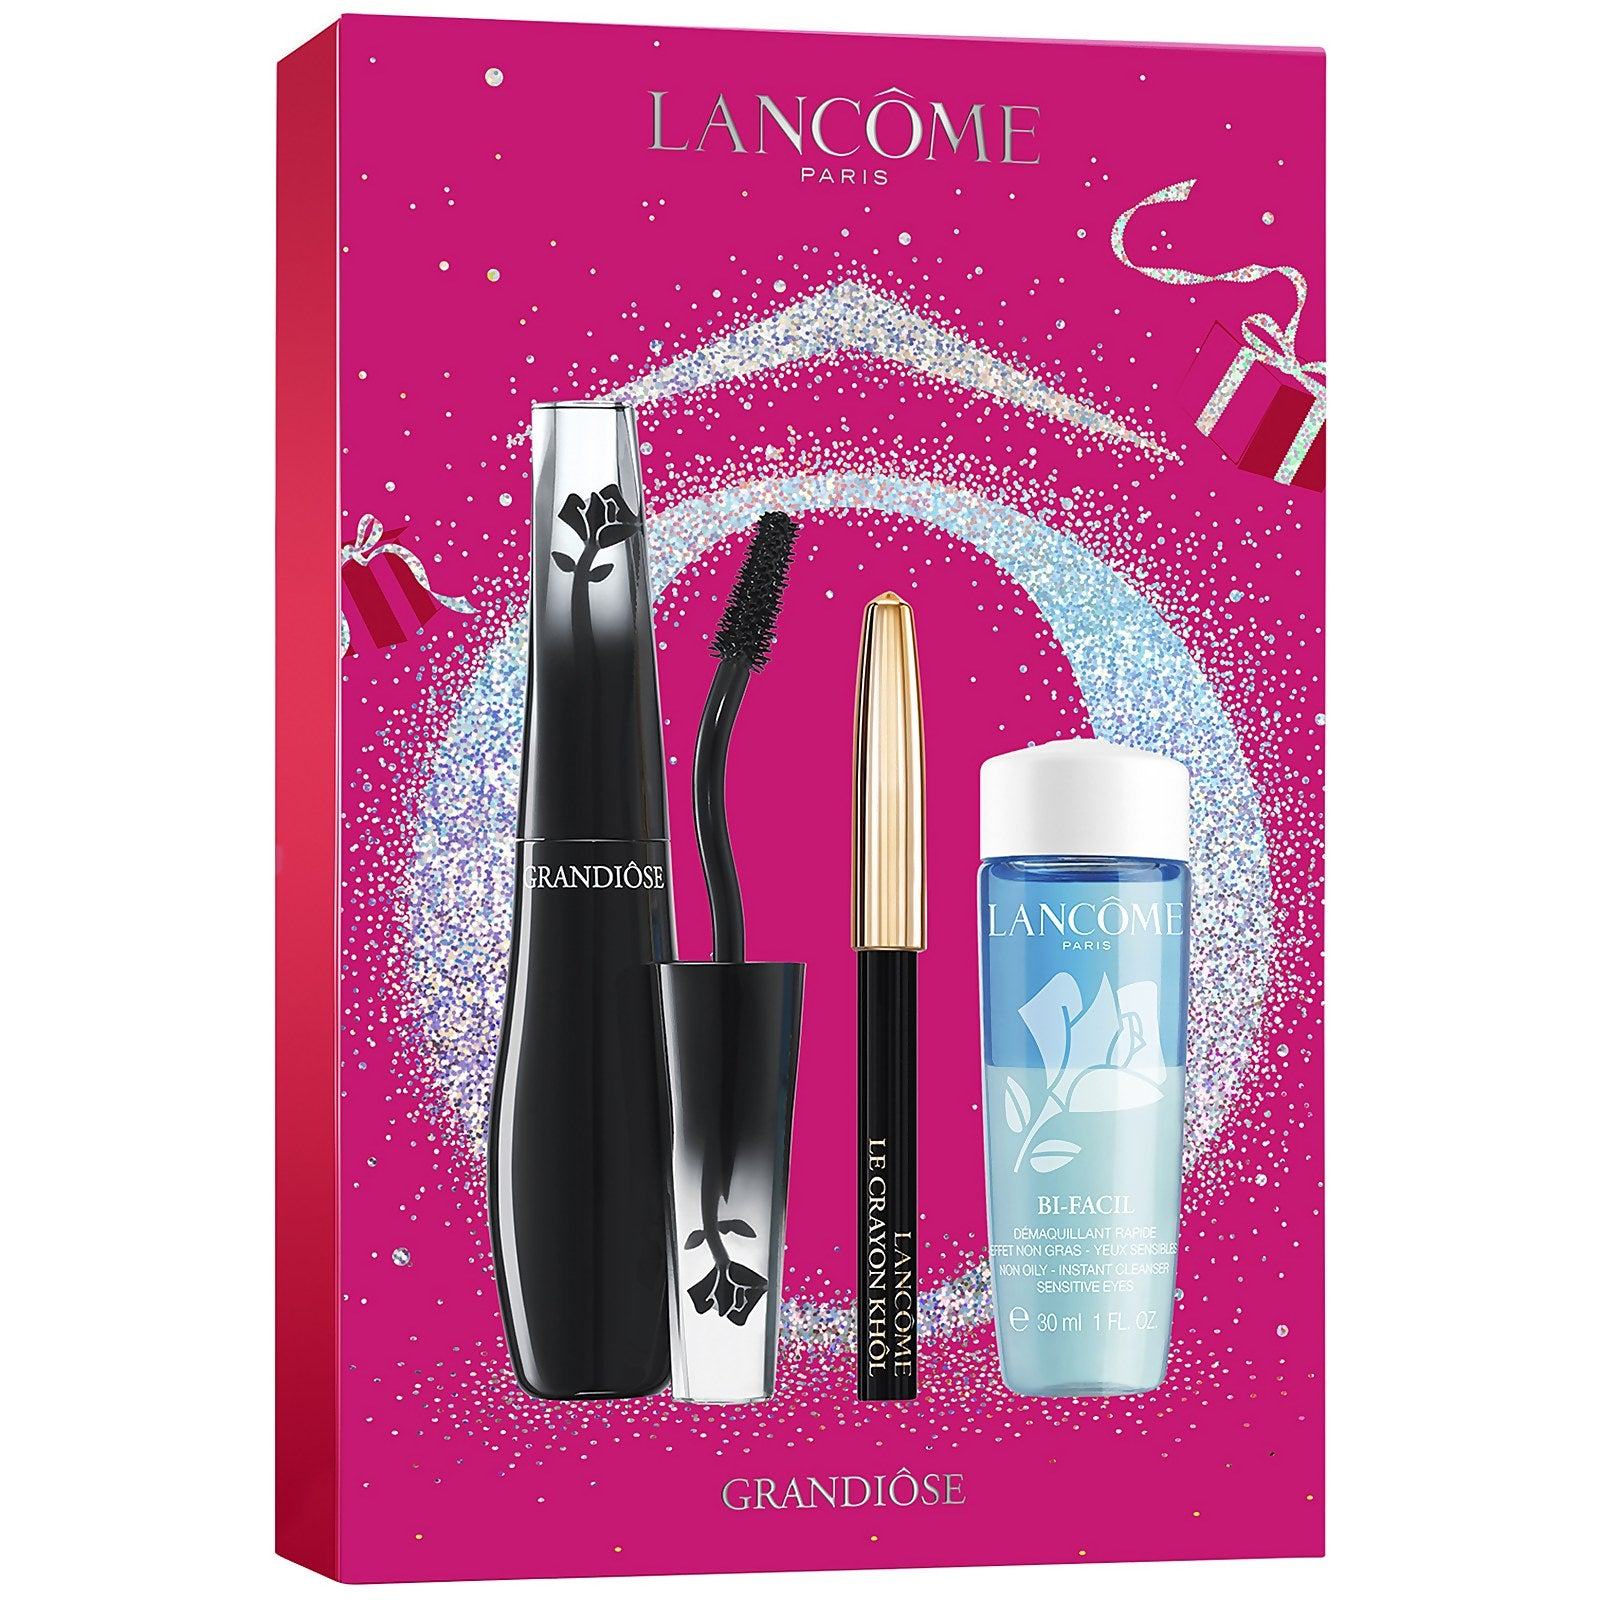 Lancôme Grandiose Mascara Makeup Gift Set